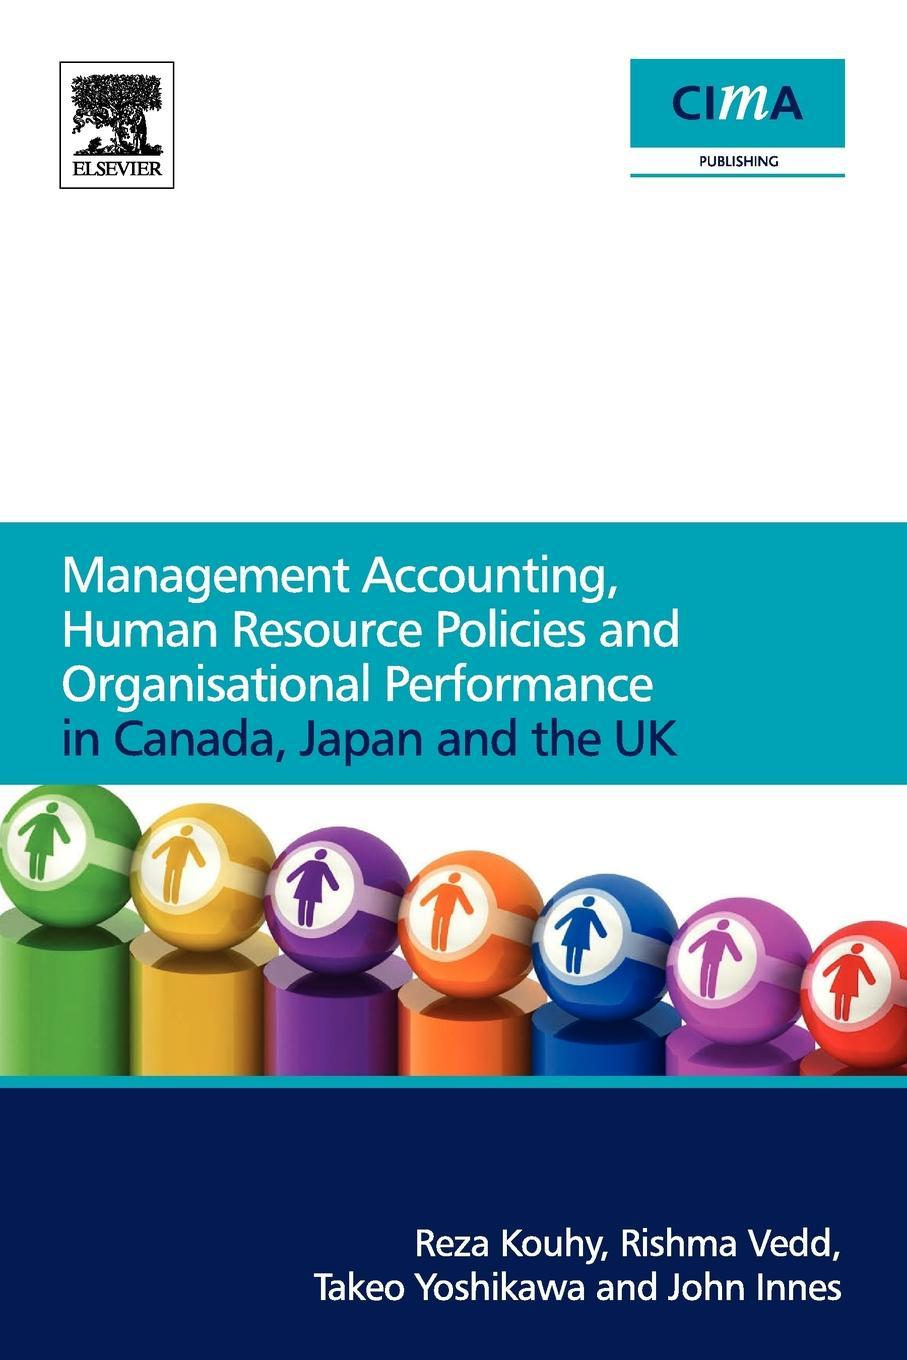 MANAGEMENT ACCOUNTING, HUMAN RESOURCE MANAGEMENT AND ORGANISATIONAL PERFORMANCE IN CANADA, JAPAN AND THE UK EB2370003329186